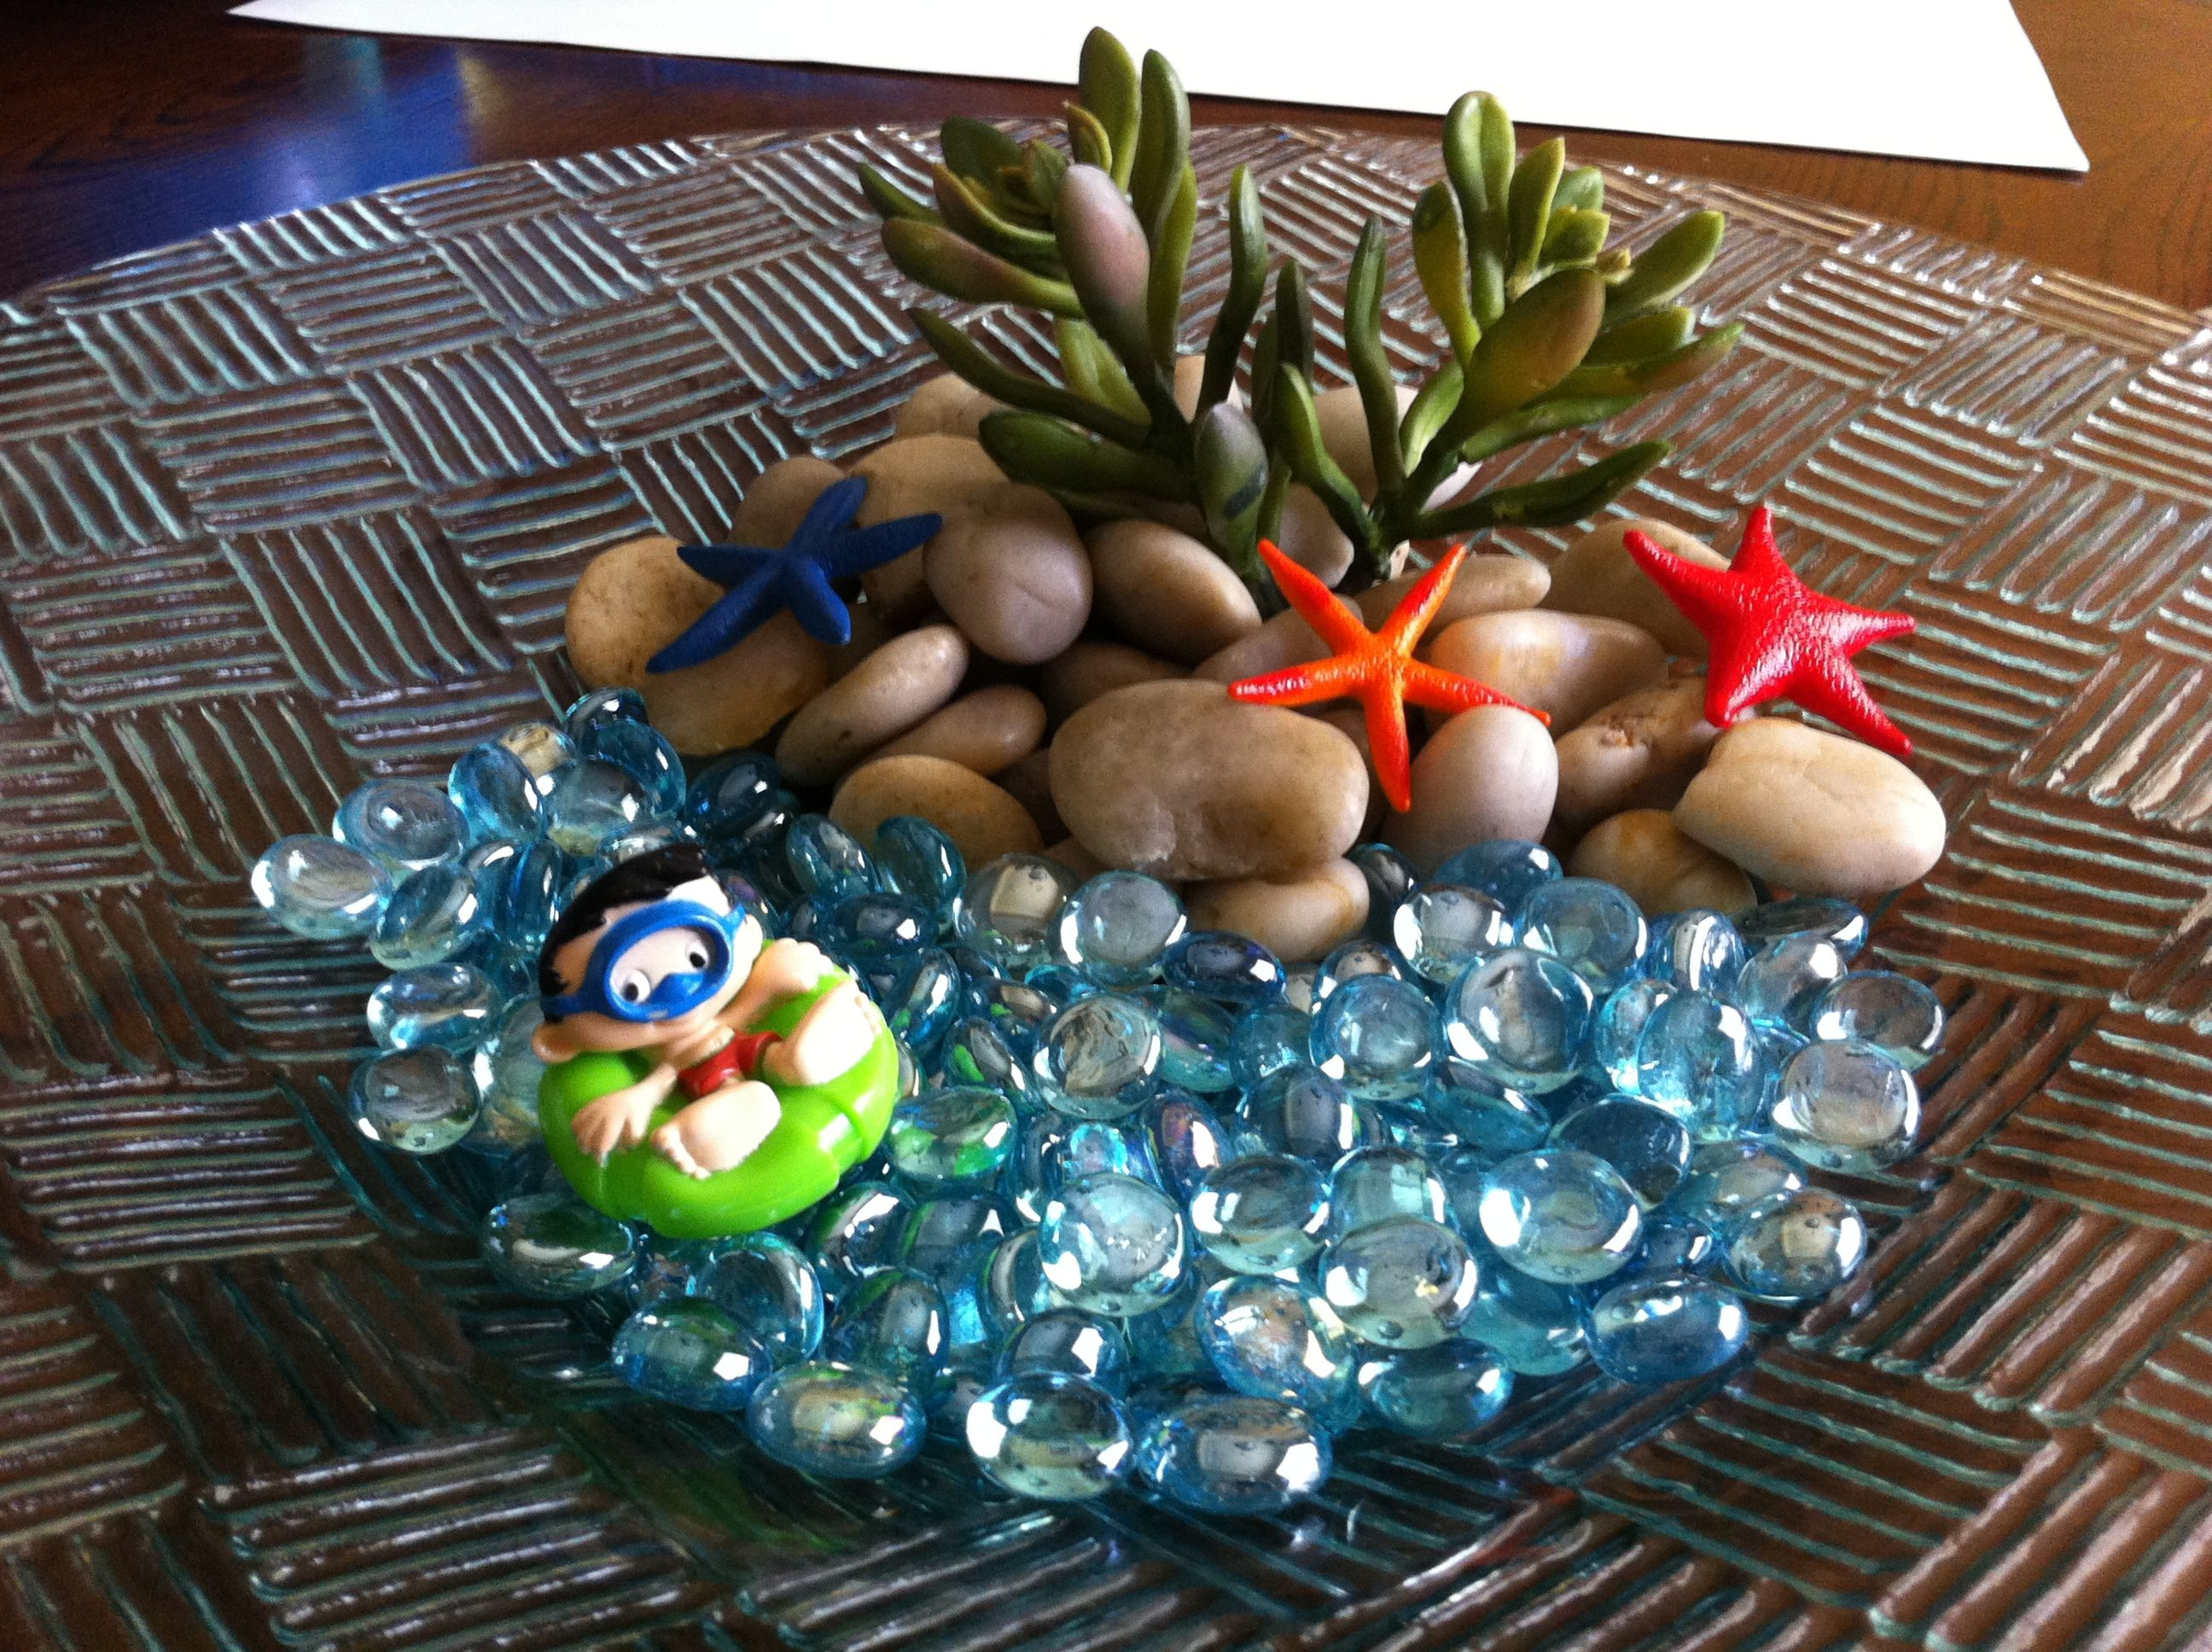 Going to put decoration like this in a faux fish bowl for my son